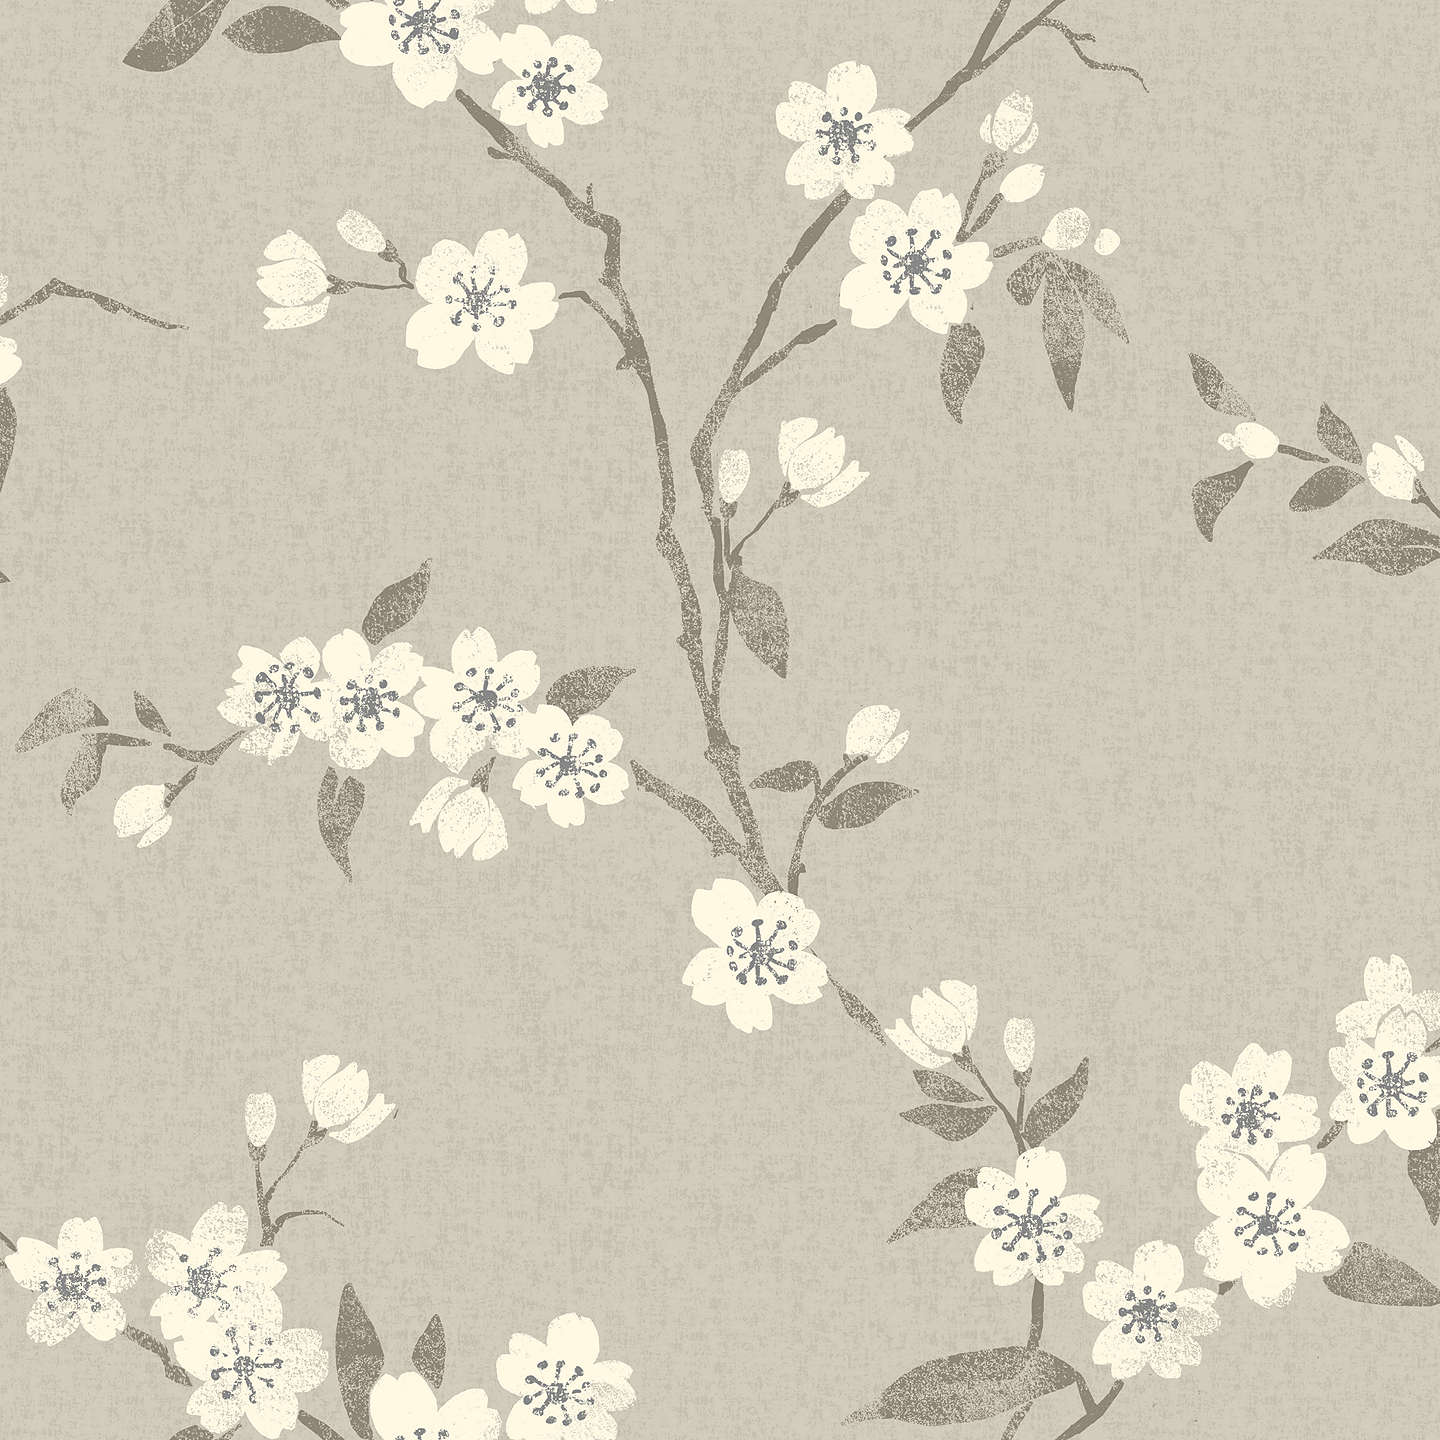 BuyJohn Lewis Cherry Blossom Wallpaper Putty Online At Johnlewis